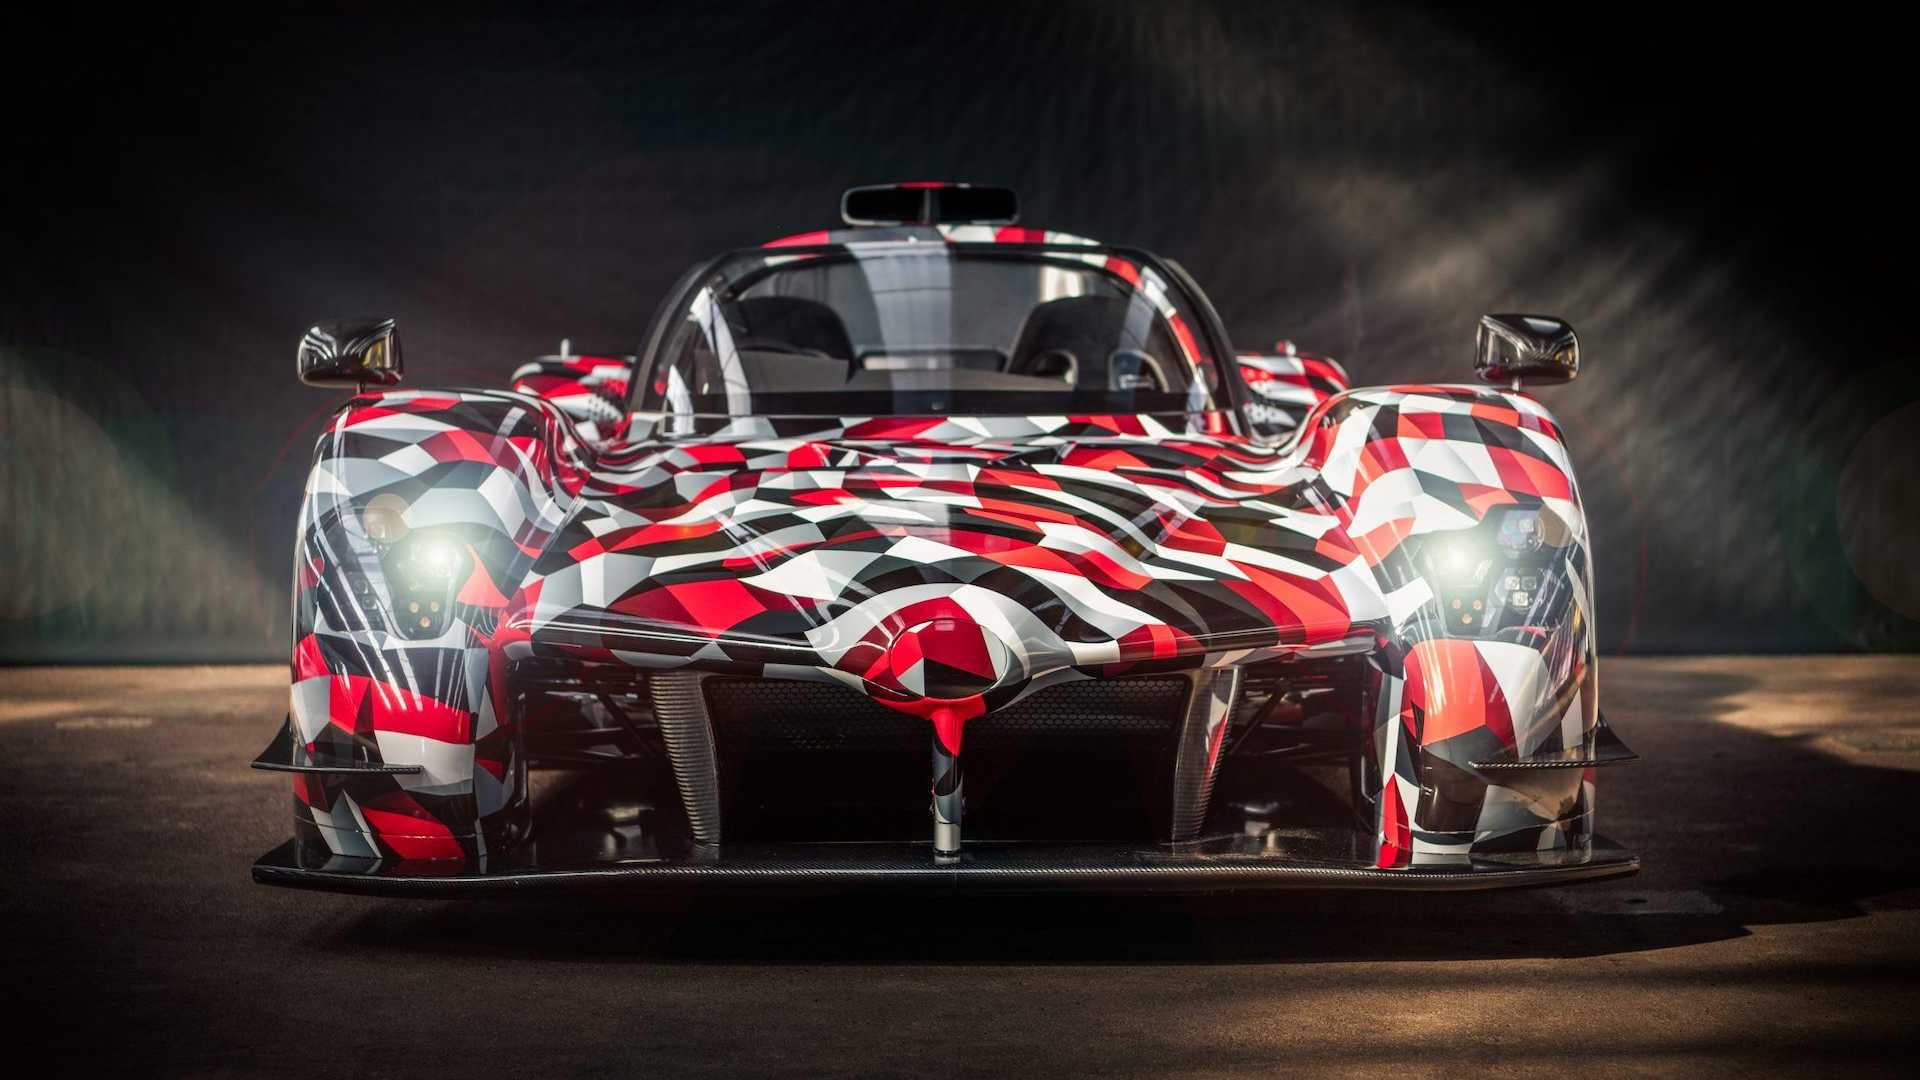 Toyota has prepared quite well to the 88th 24 Hours of Le Mans, building a unique GR Super Sport racer to participate in the championship and multiple street-legal copies for collectors.